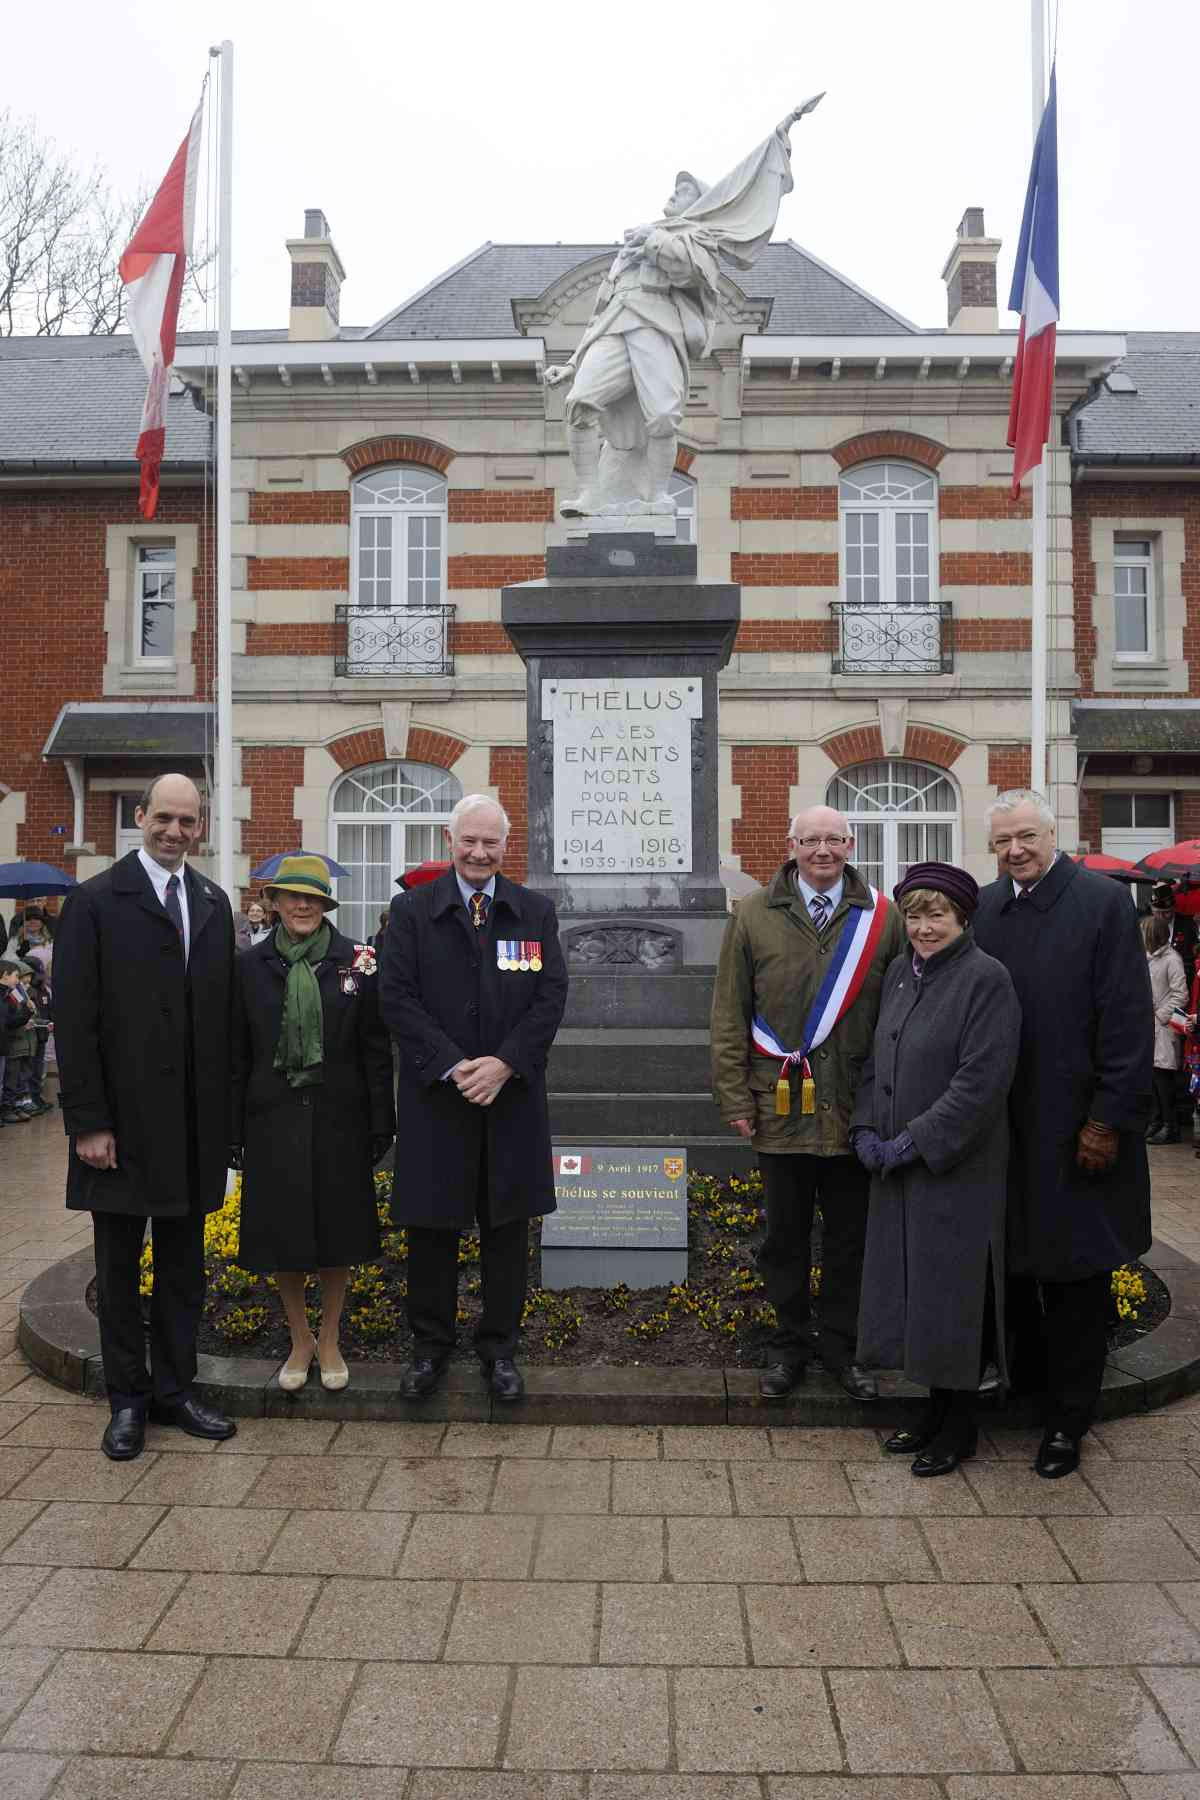 The unveiling of the commemorative plaque at Thélus Town Hall was attended by (from left to right) Mr. Steven Blaney, Minister of Veterans Affairs, Their Excellencies, Mr. Bernard Milleville, Mayor of Thélus, as well as Mr. Marc Lortie, Ambassador to Canada in France, and his spouse.